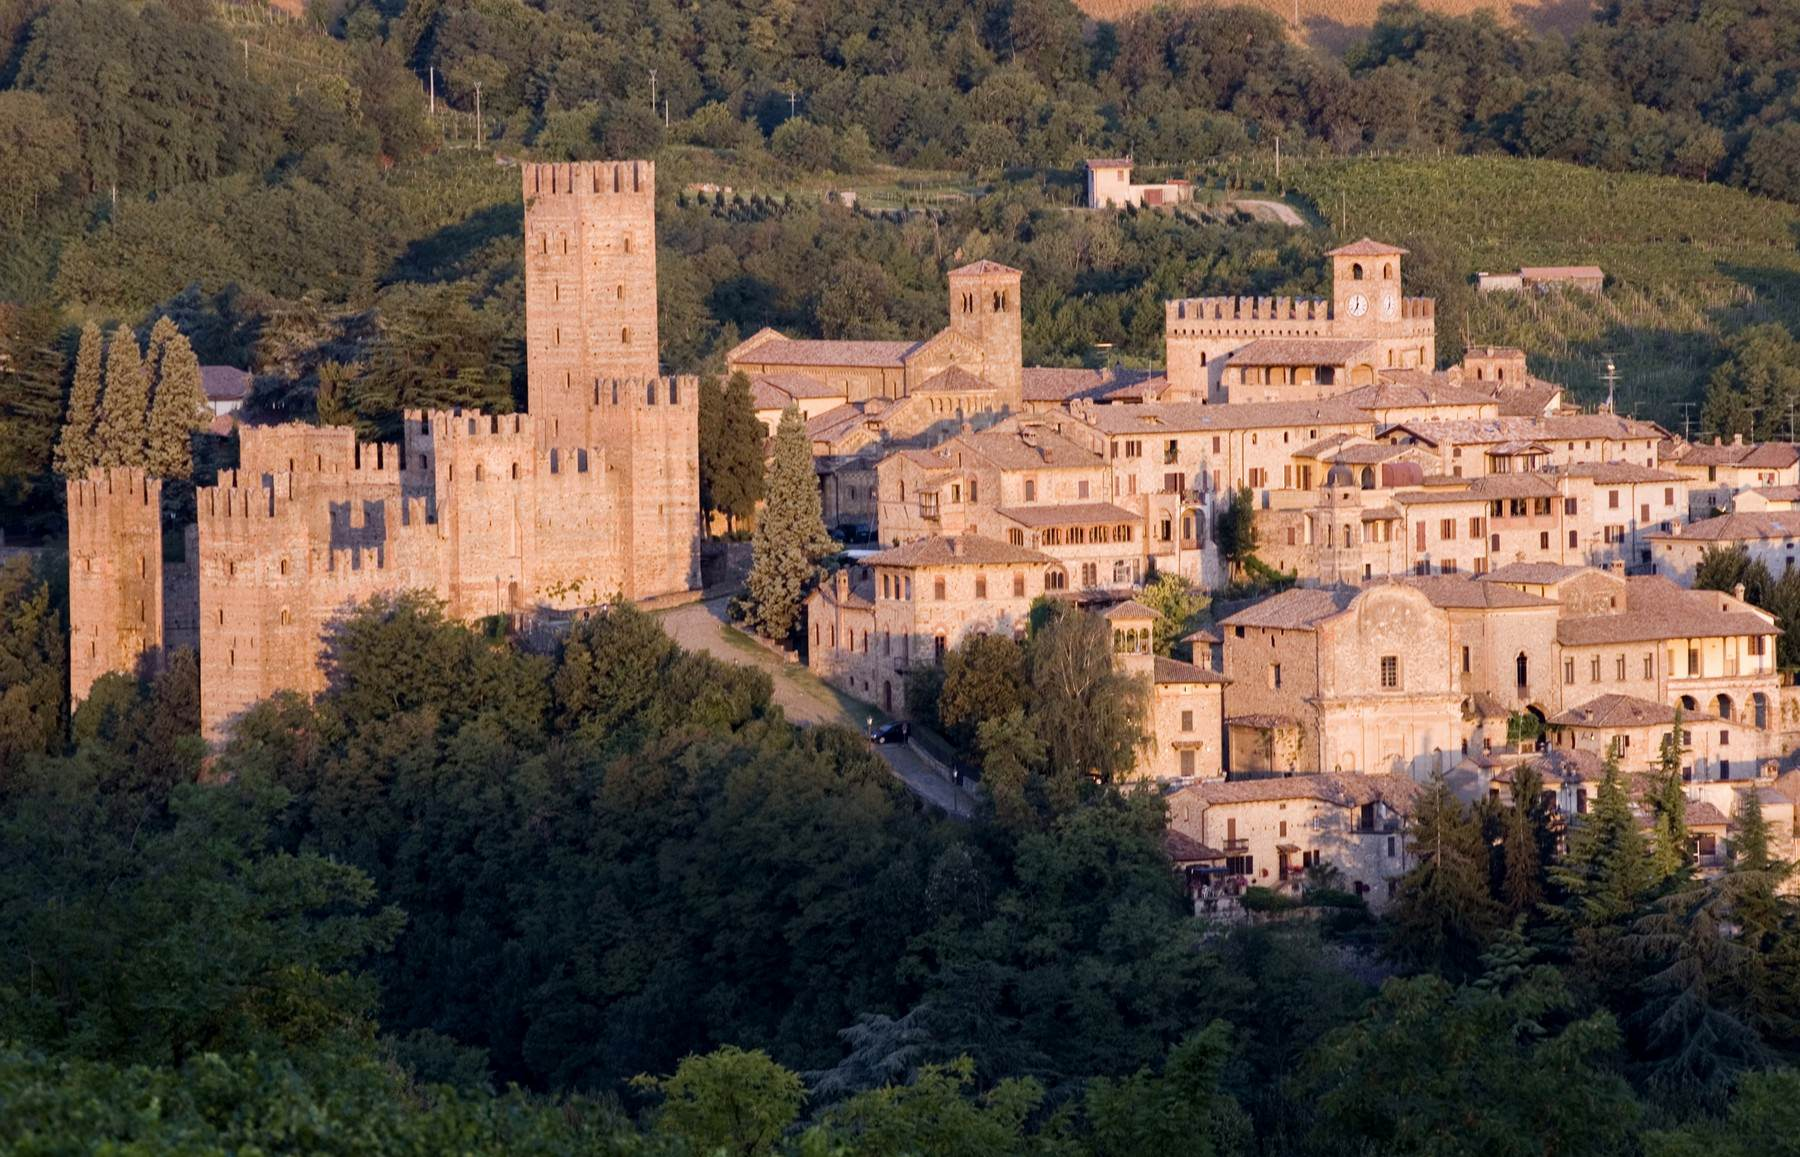 castellarquato wedding